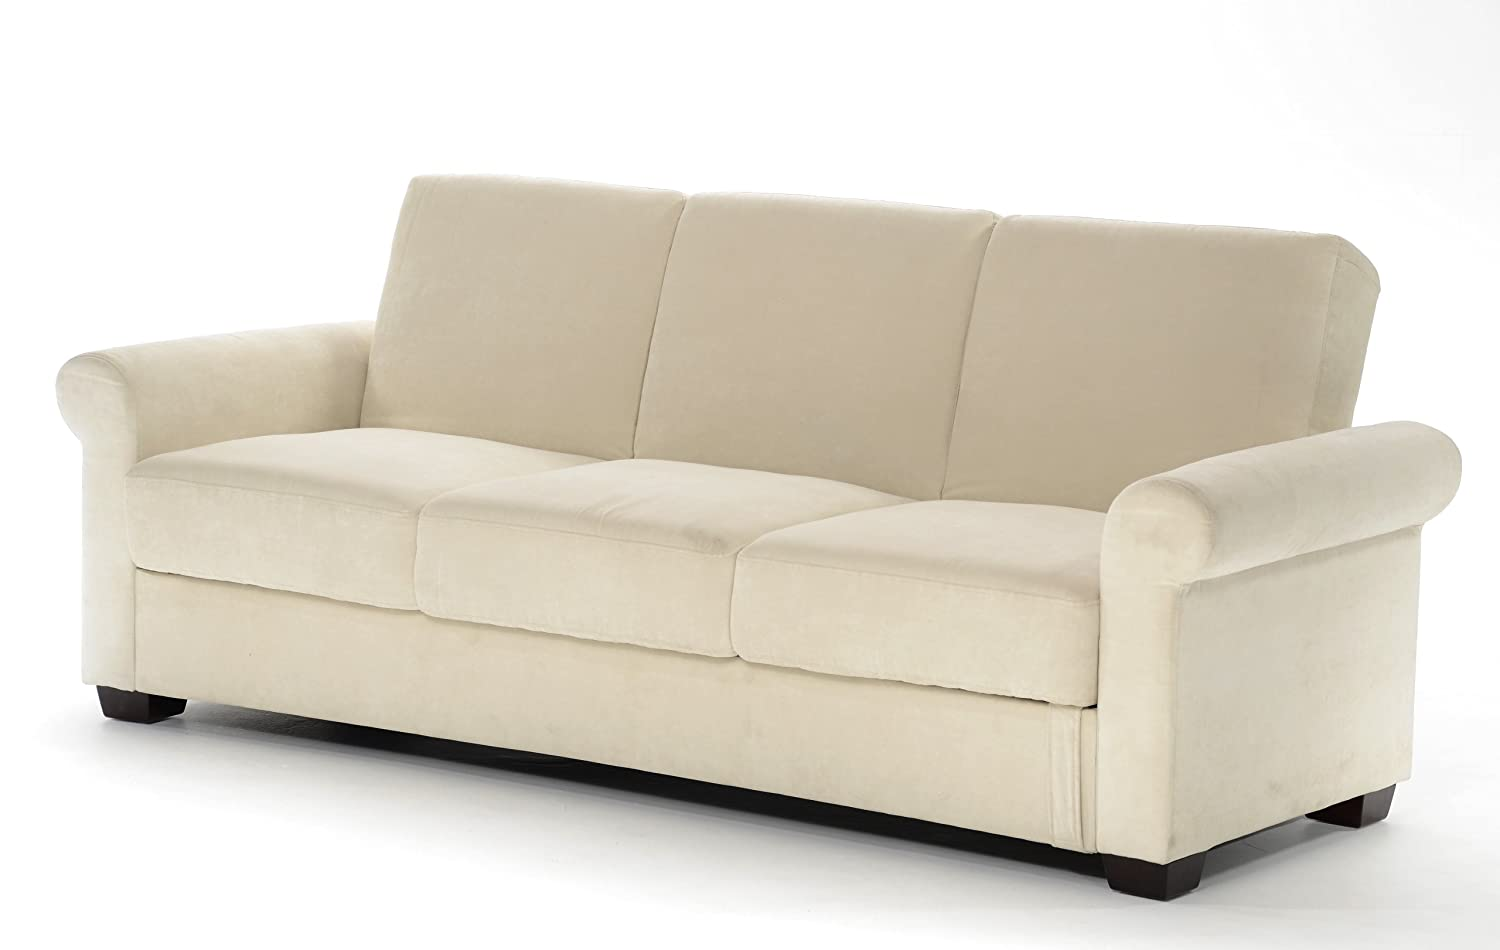 Serta Dream Convertible Eli Sofa - Light Brown